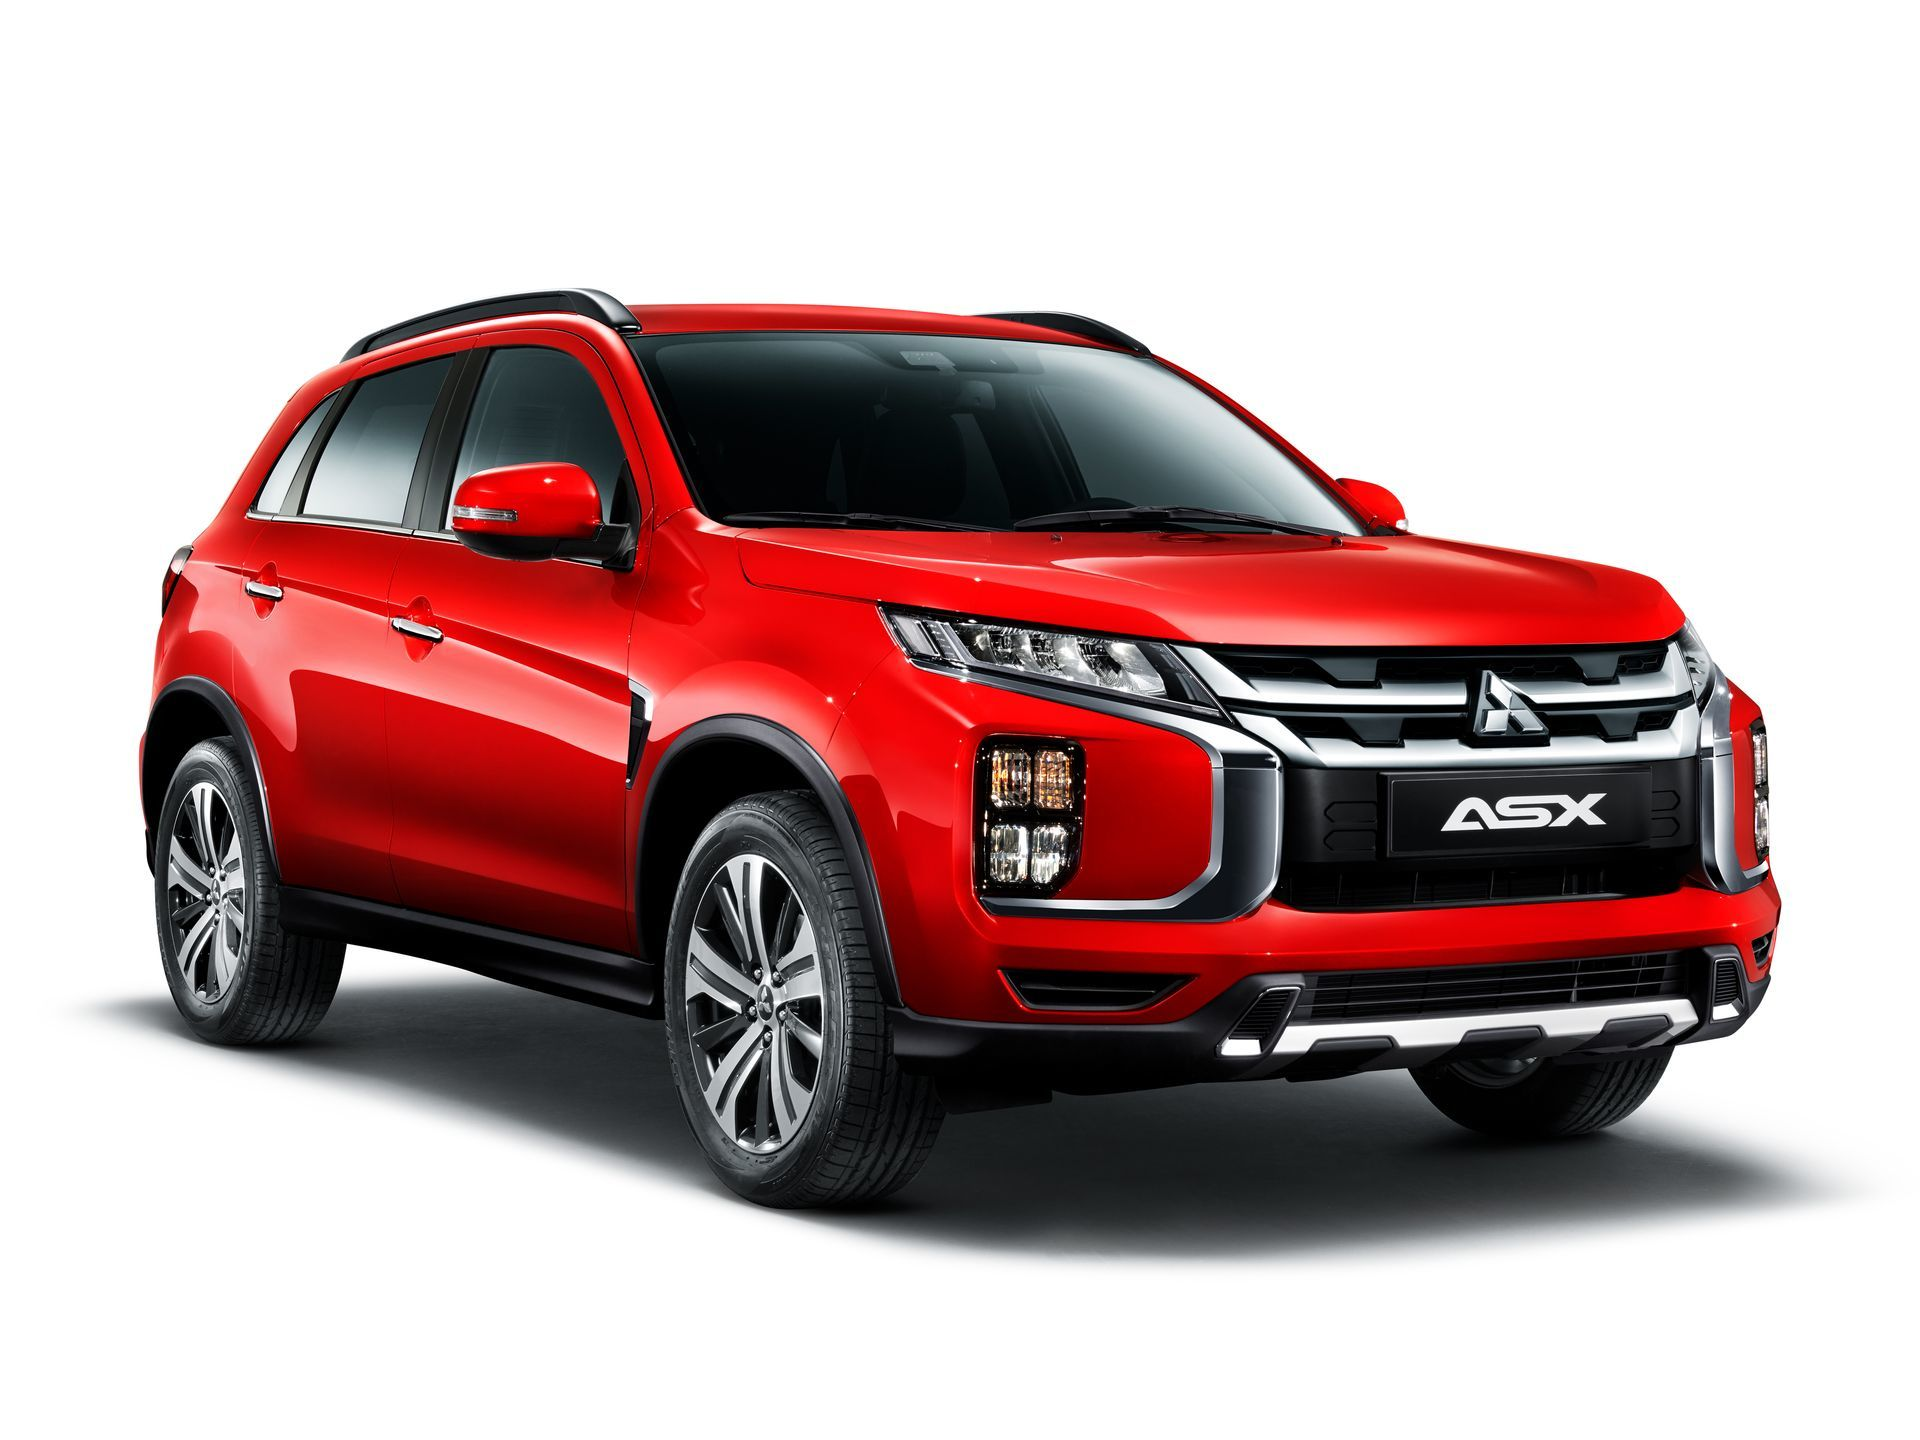 Mitsubishi Asx Specs and Review